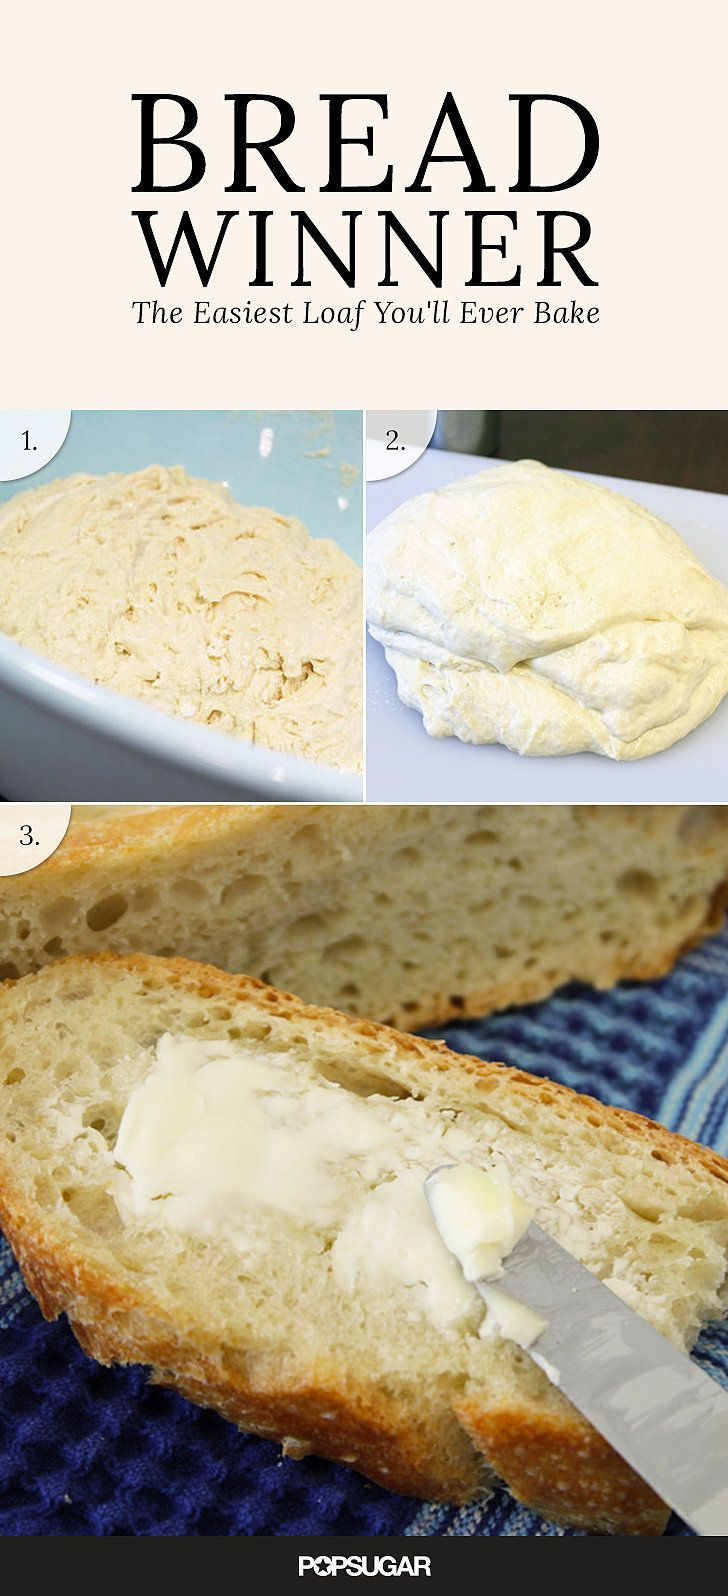 This recipe results in that crisp, crackly crust and fluffy, chewy interior that you crave in a rustic loaf, and all this without a single kneading stroke.